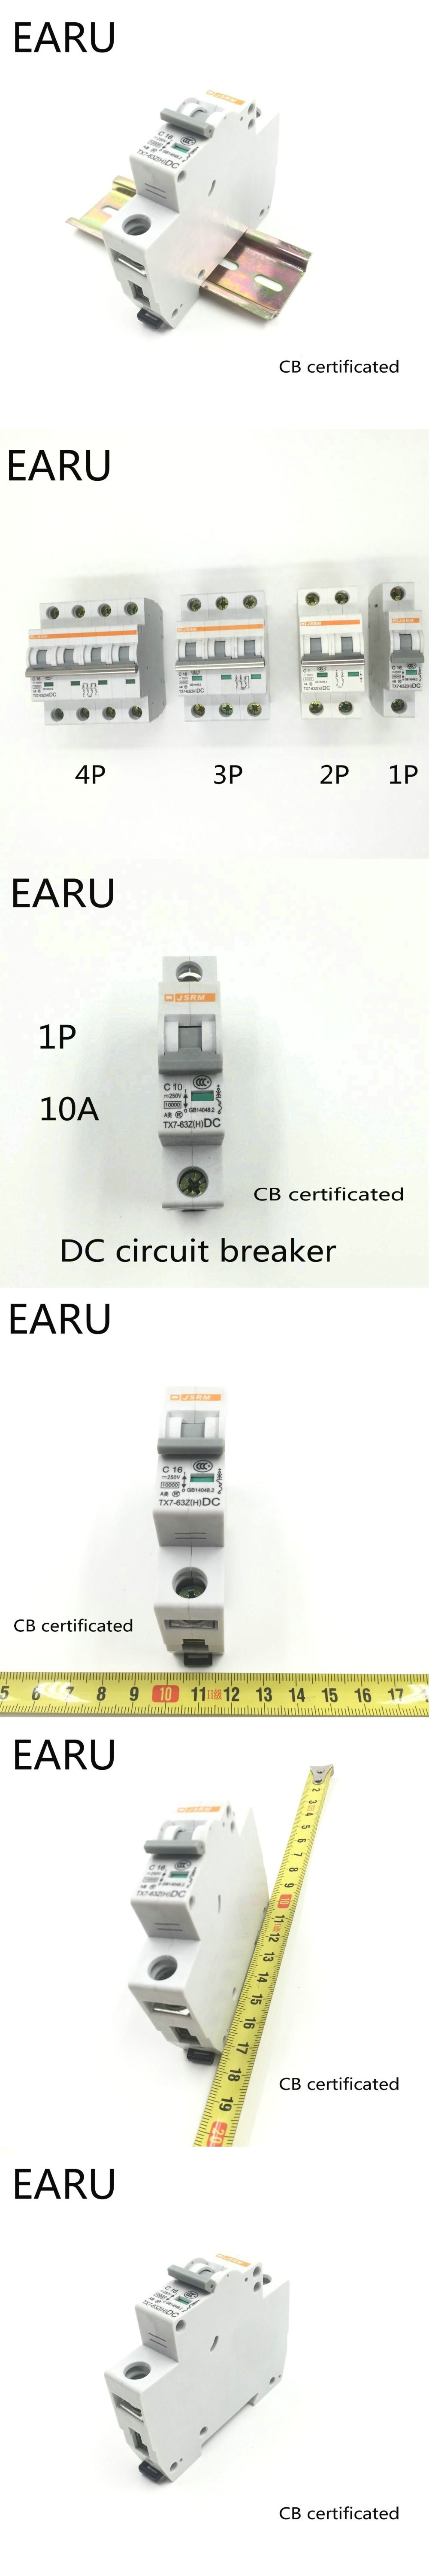 1p 10a Dc 250v Circuit Breaker Mcb For Pv Solar Energy Photovoltaic System Battery C